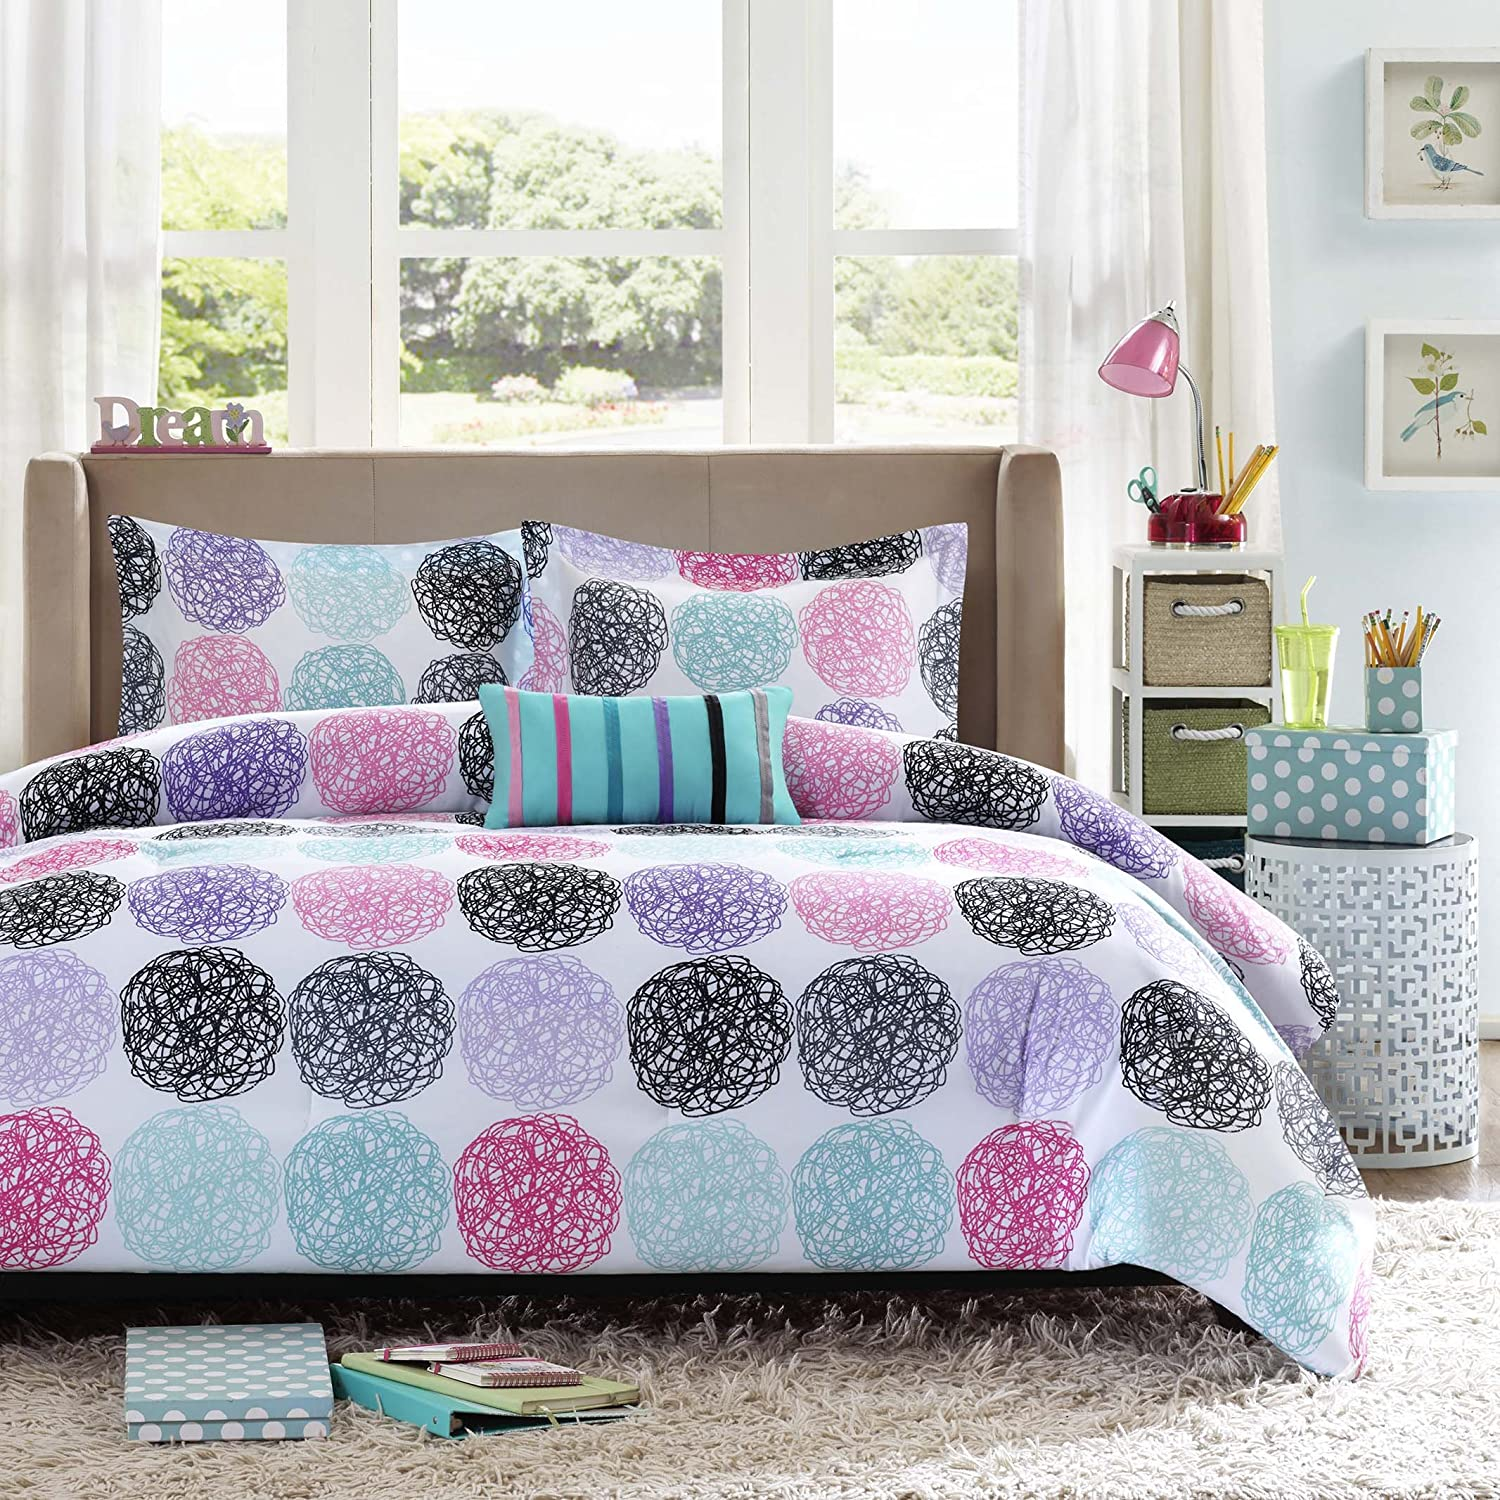 Amazon.com: Mi Zone Carly Comforter Set Full/Queen Size   Teal, Purple,  Doodled Circles Polka Dots U2013 4 Piece Bed Sets U2013 Ultra Soft Microfiber Teen  Bedding ...